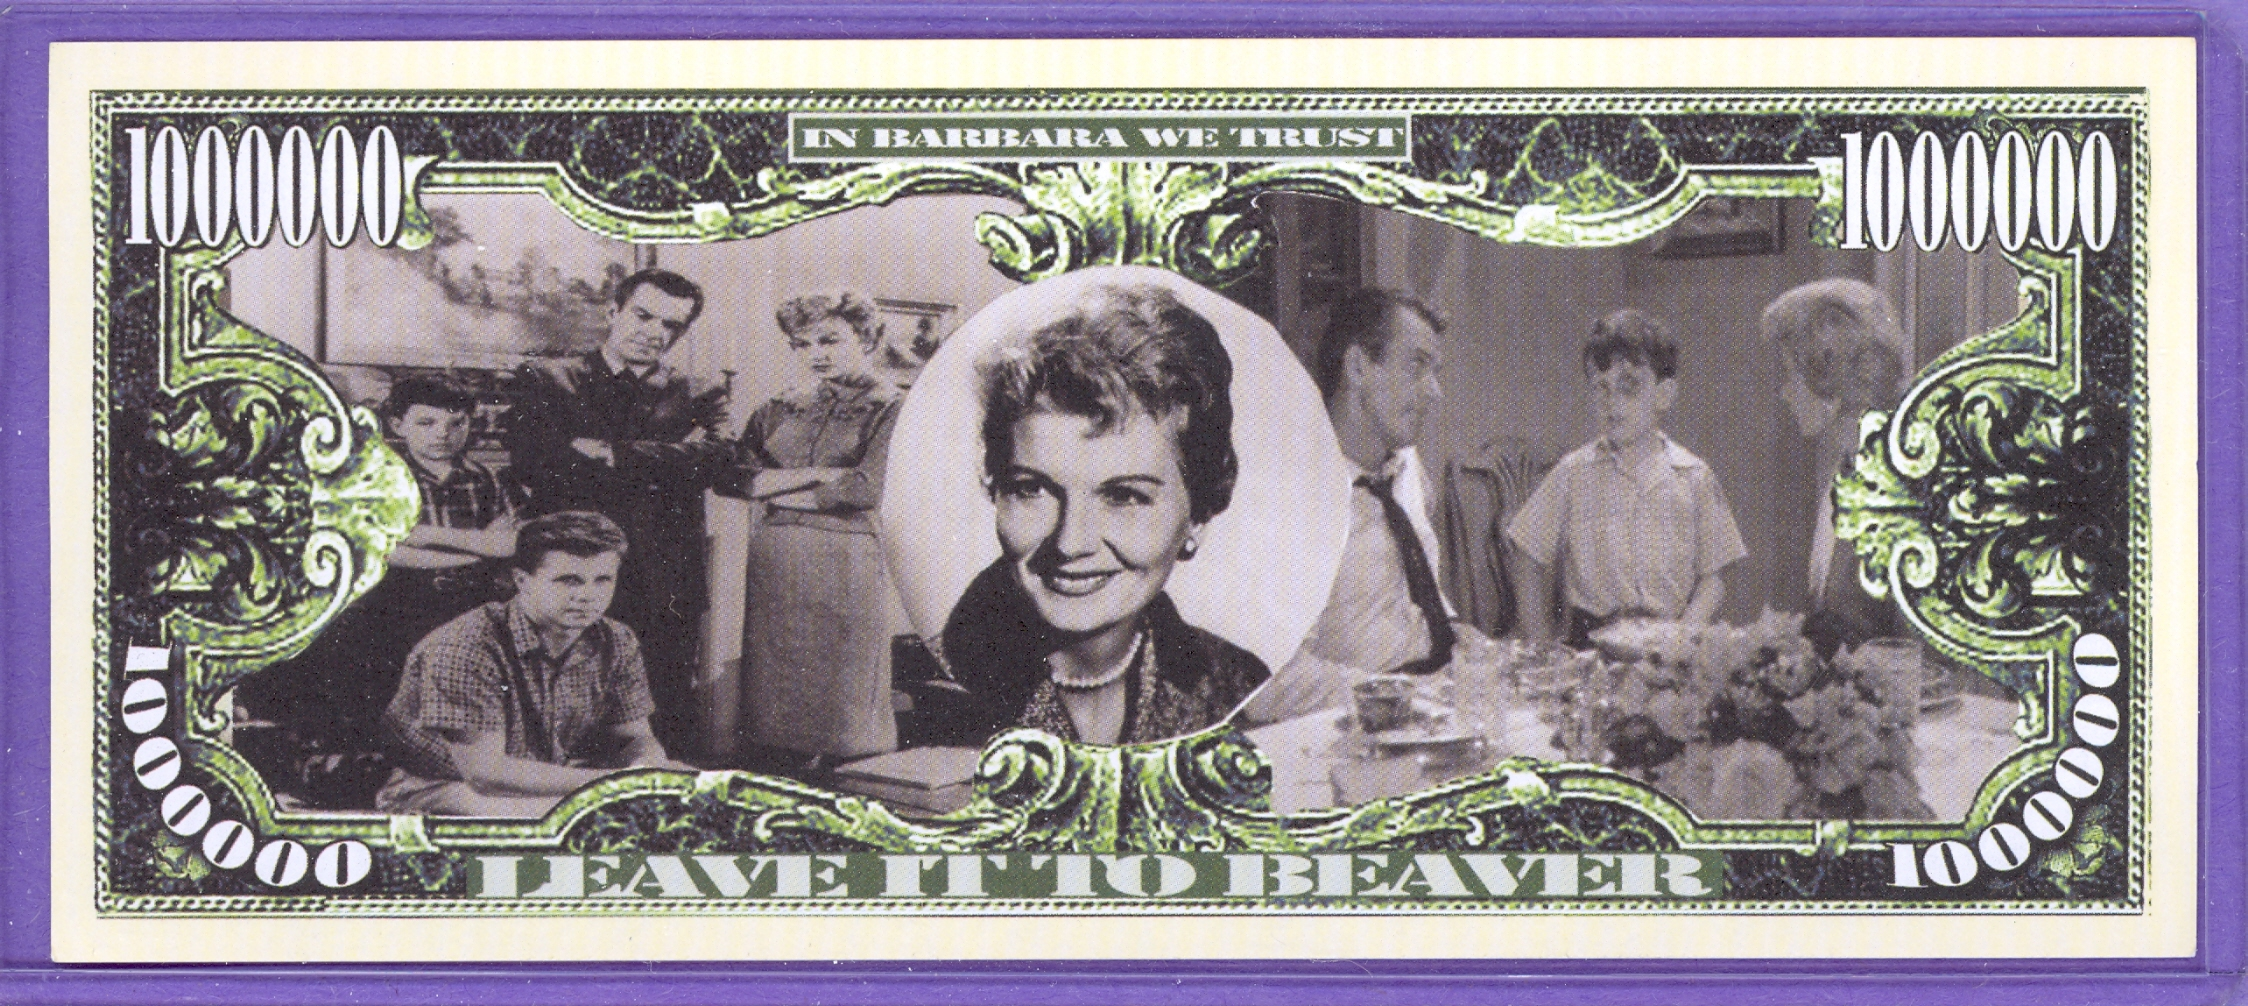 In Memory of Barbara Billingsley $1,000,000 Note